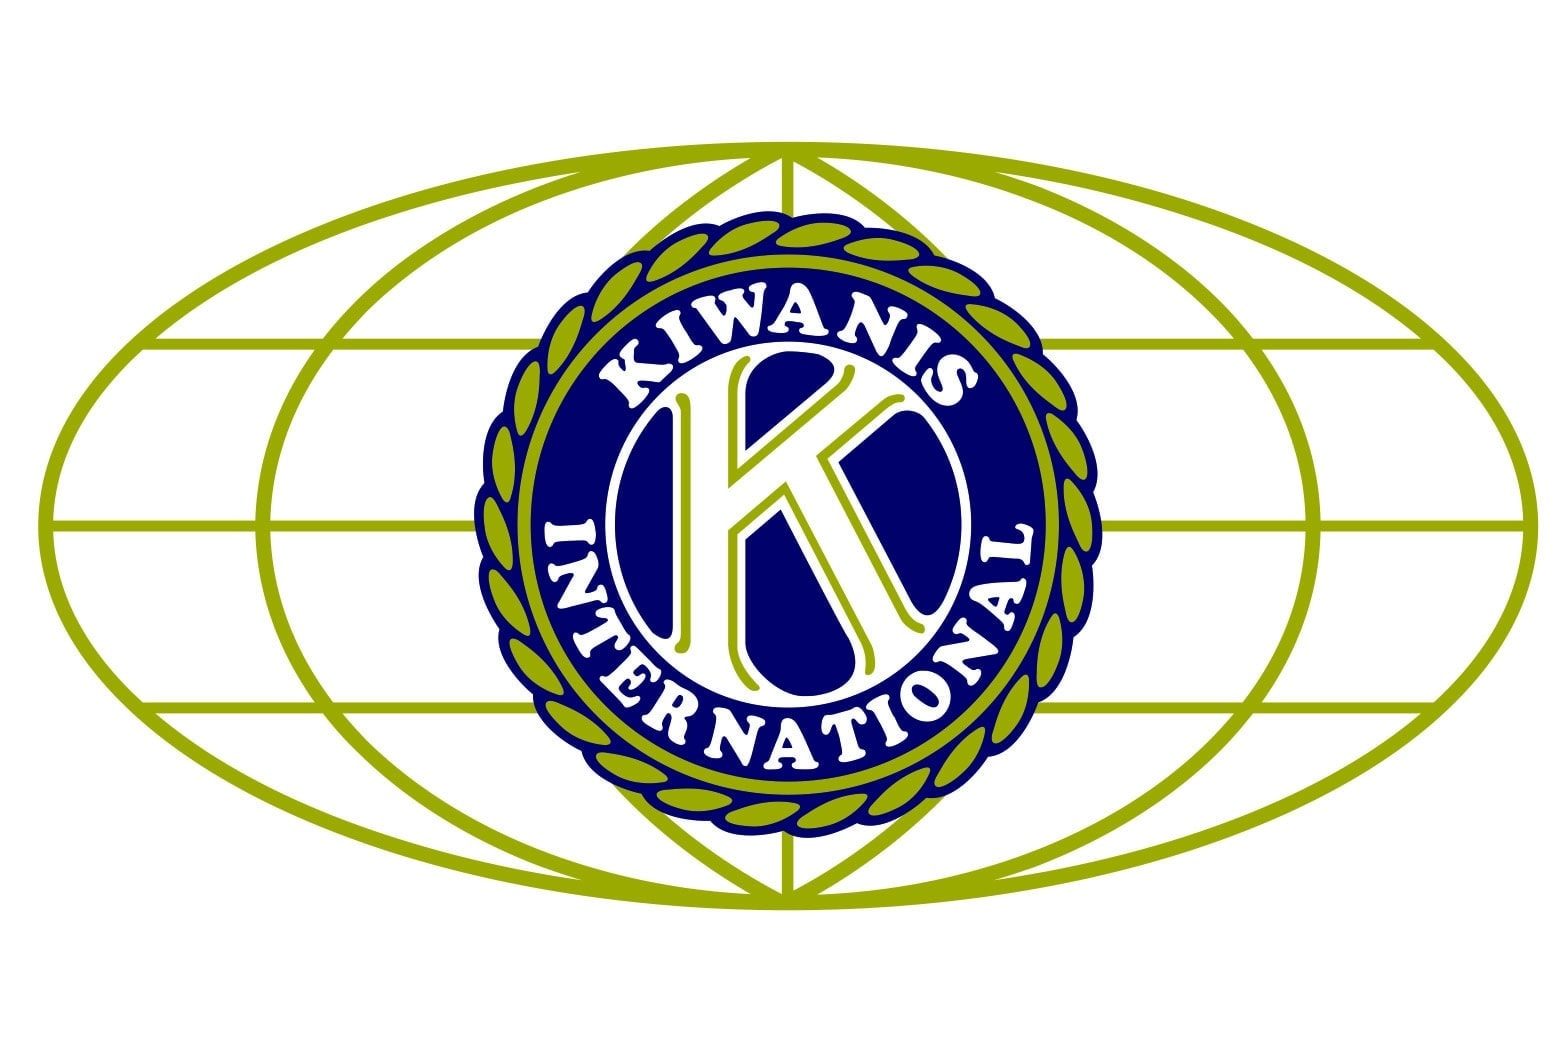 Newly established Kiwanis Club aims to support youth development